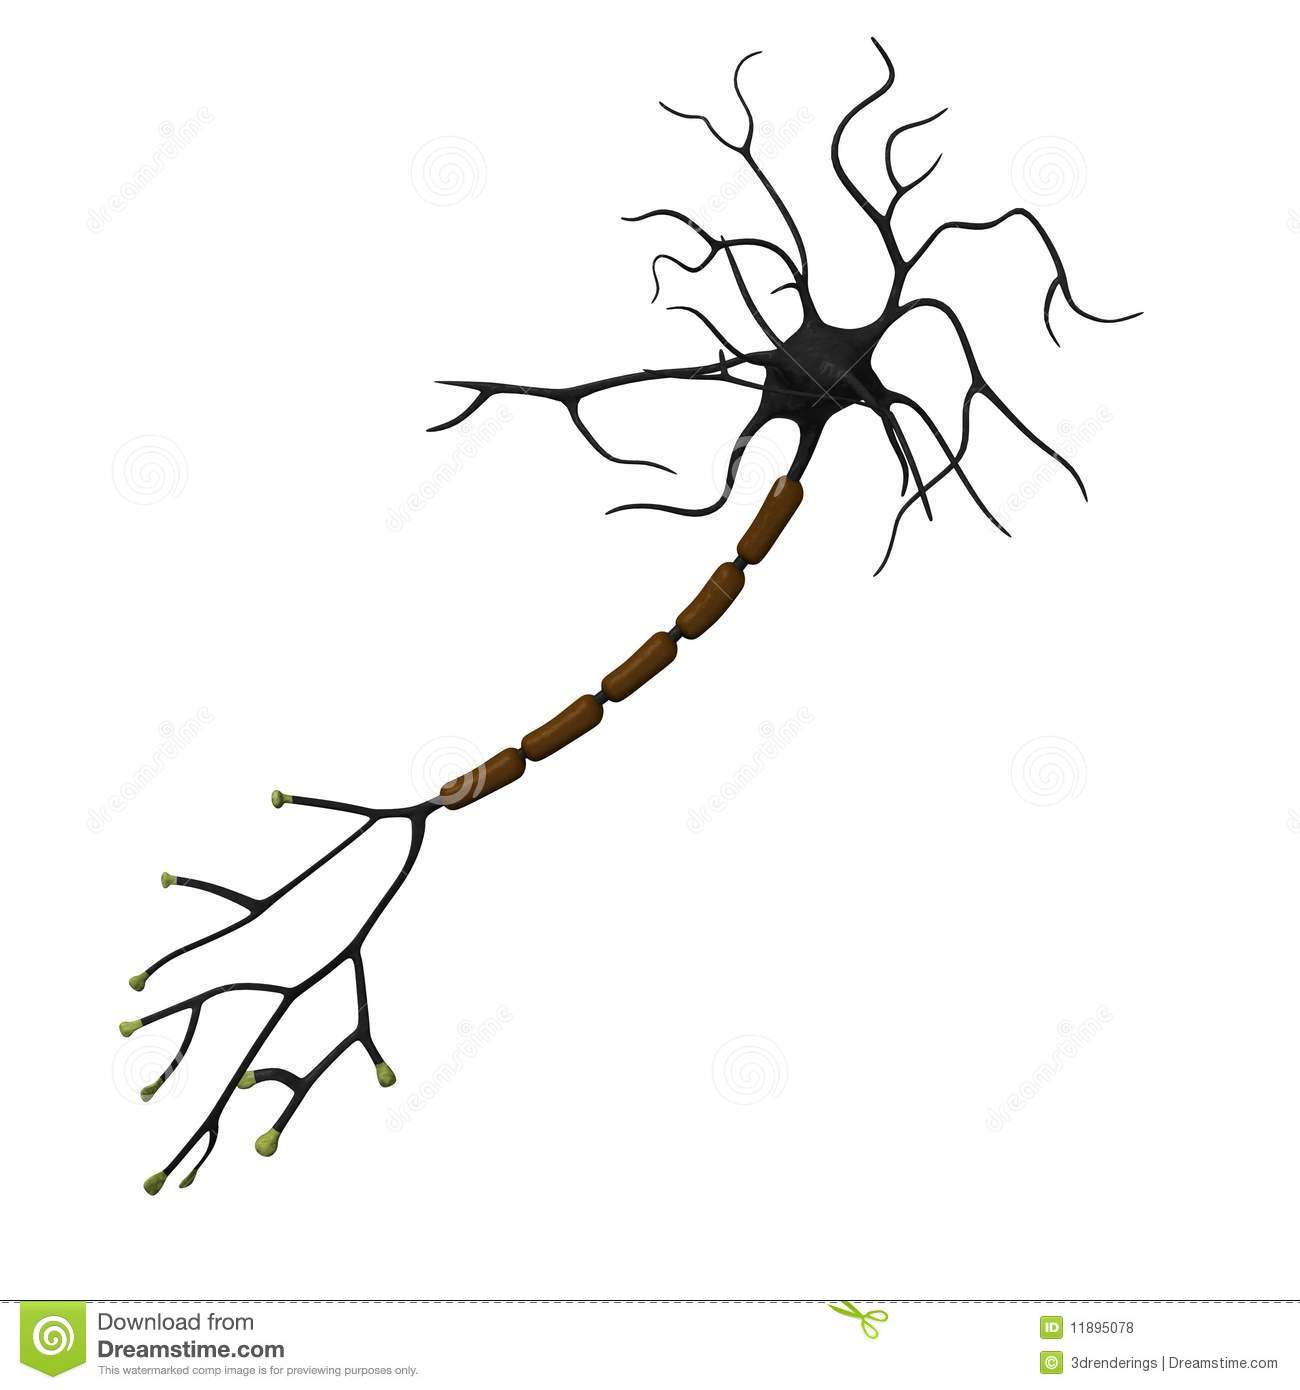 Neuron Royalty Free Stock Photos - Image: 11895078